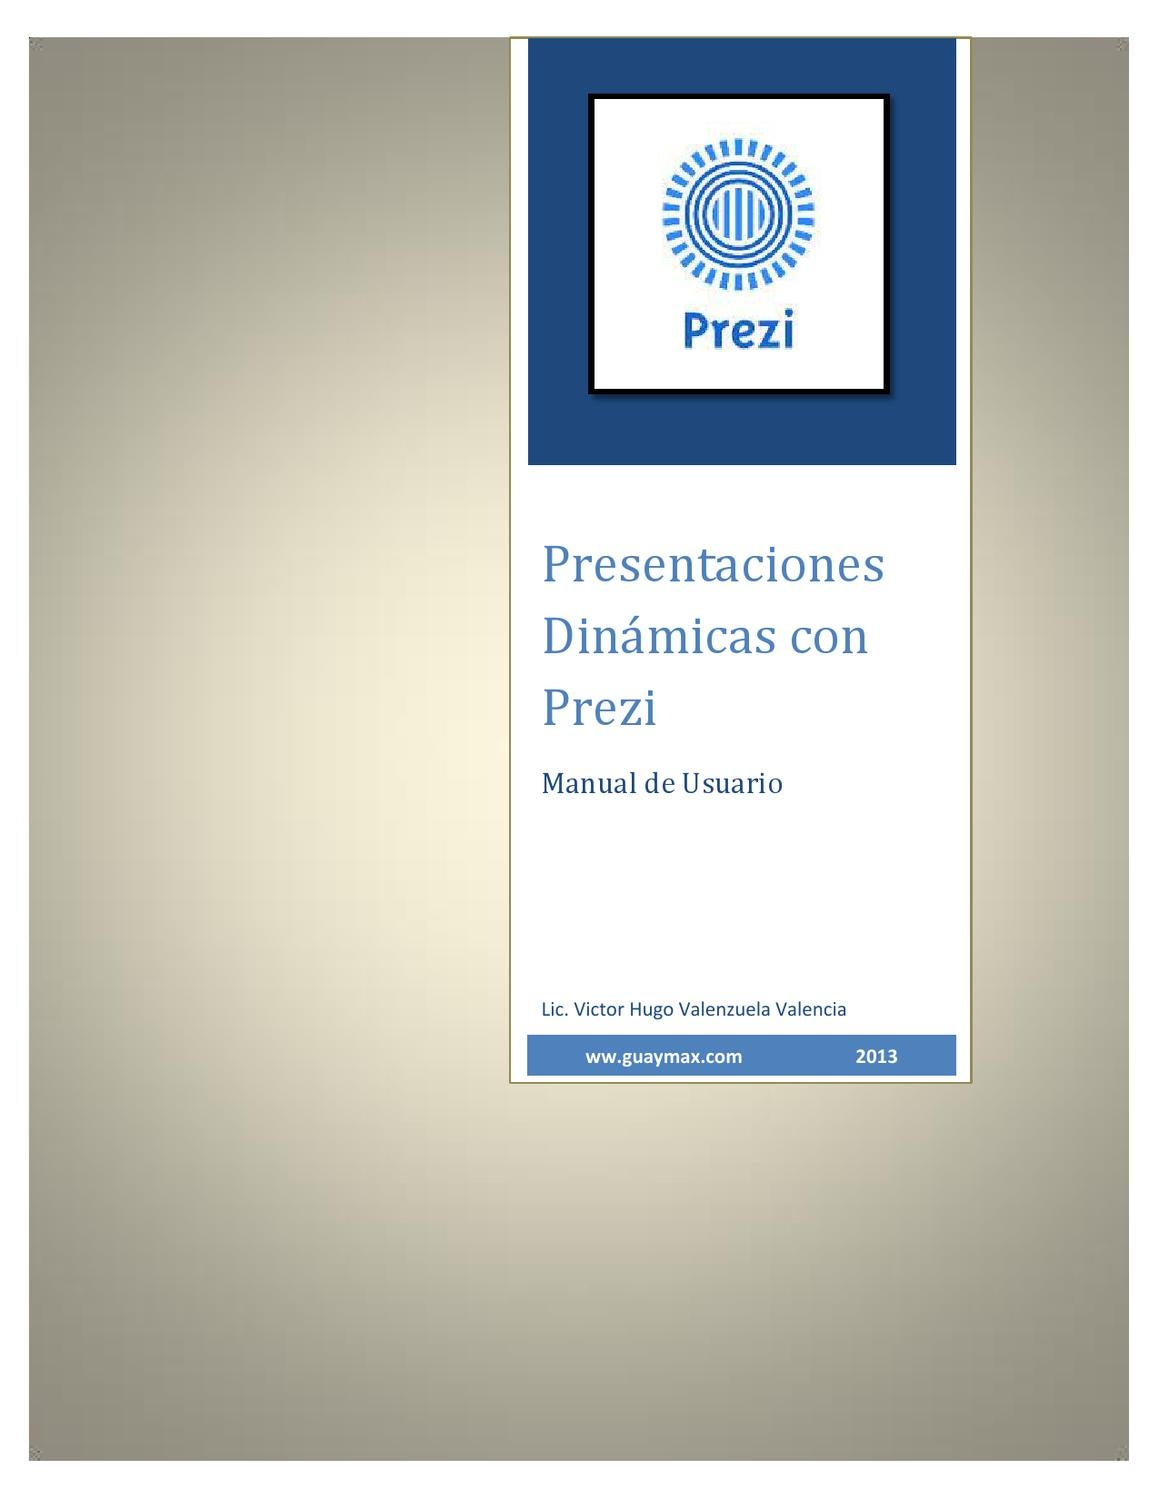 Manual Prezi by victor valenzuela - issuu